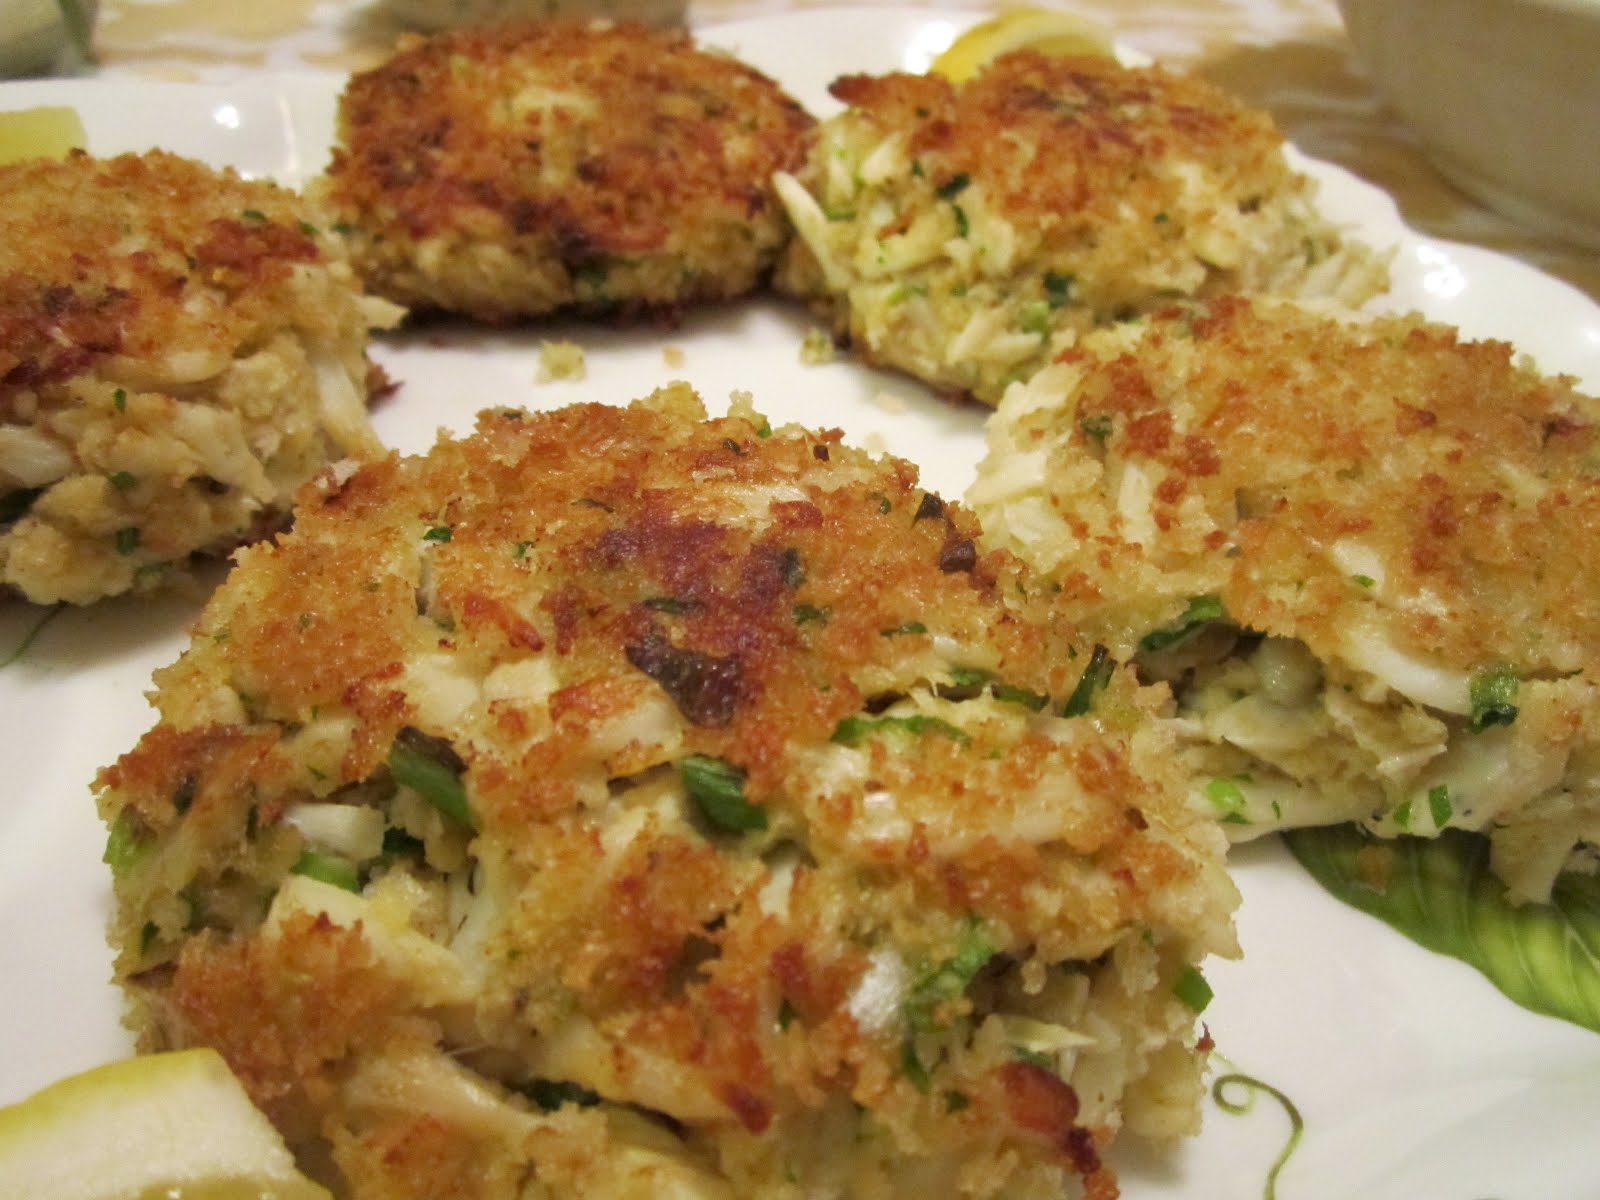 KnitOne,PearlOnion: Baltimore Crab Cakes